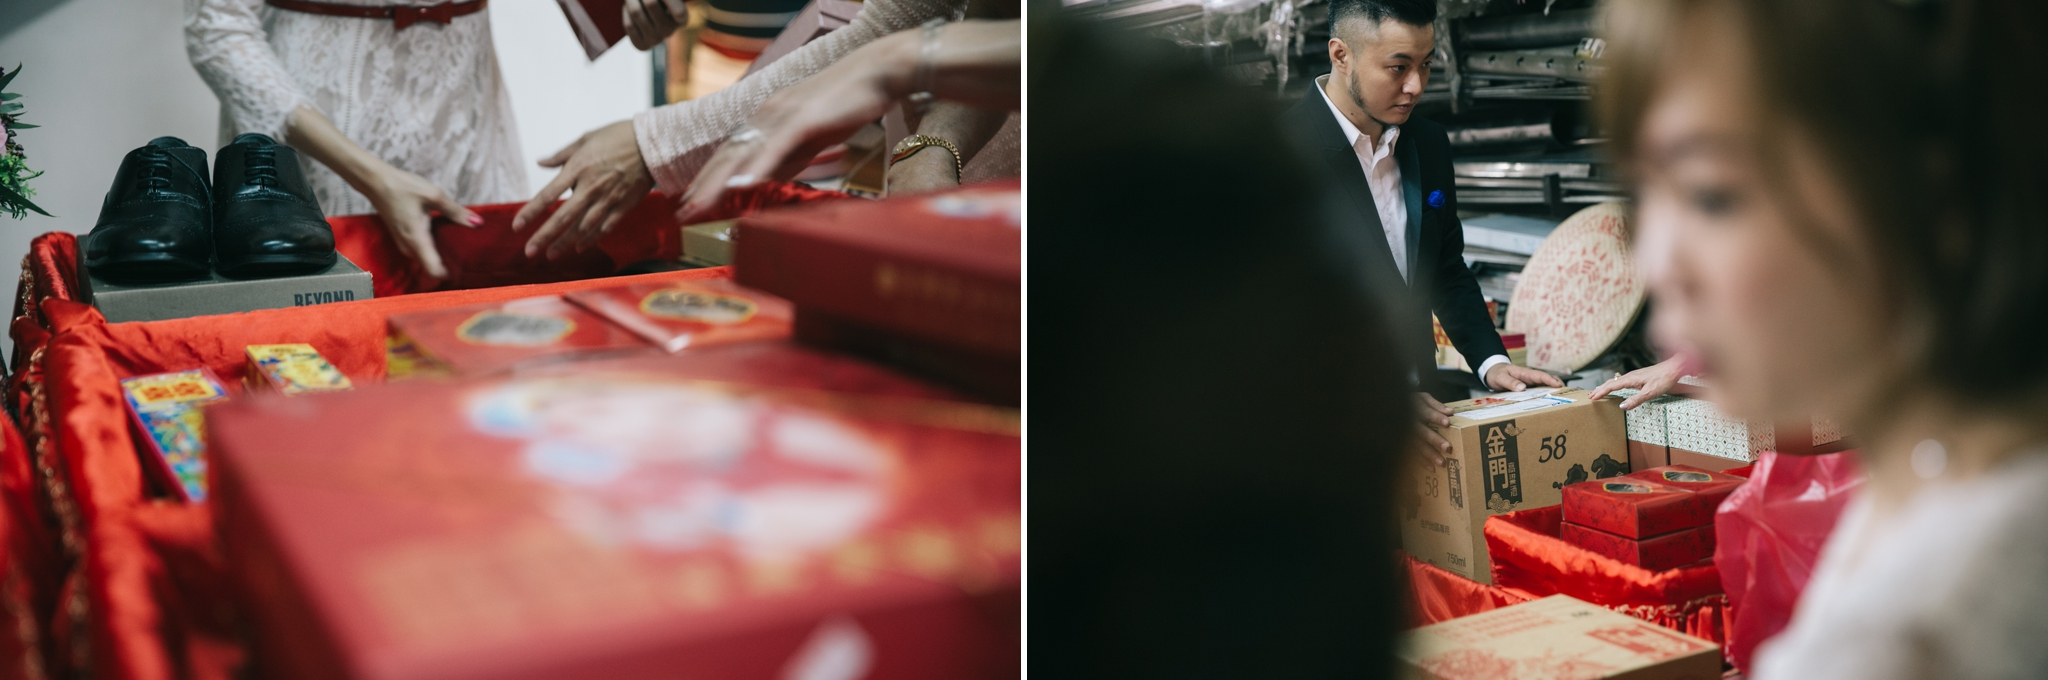 Keddy+Richard-wedding-新莊頤品飯店-048.jpg